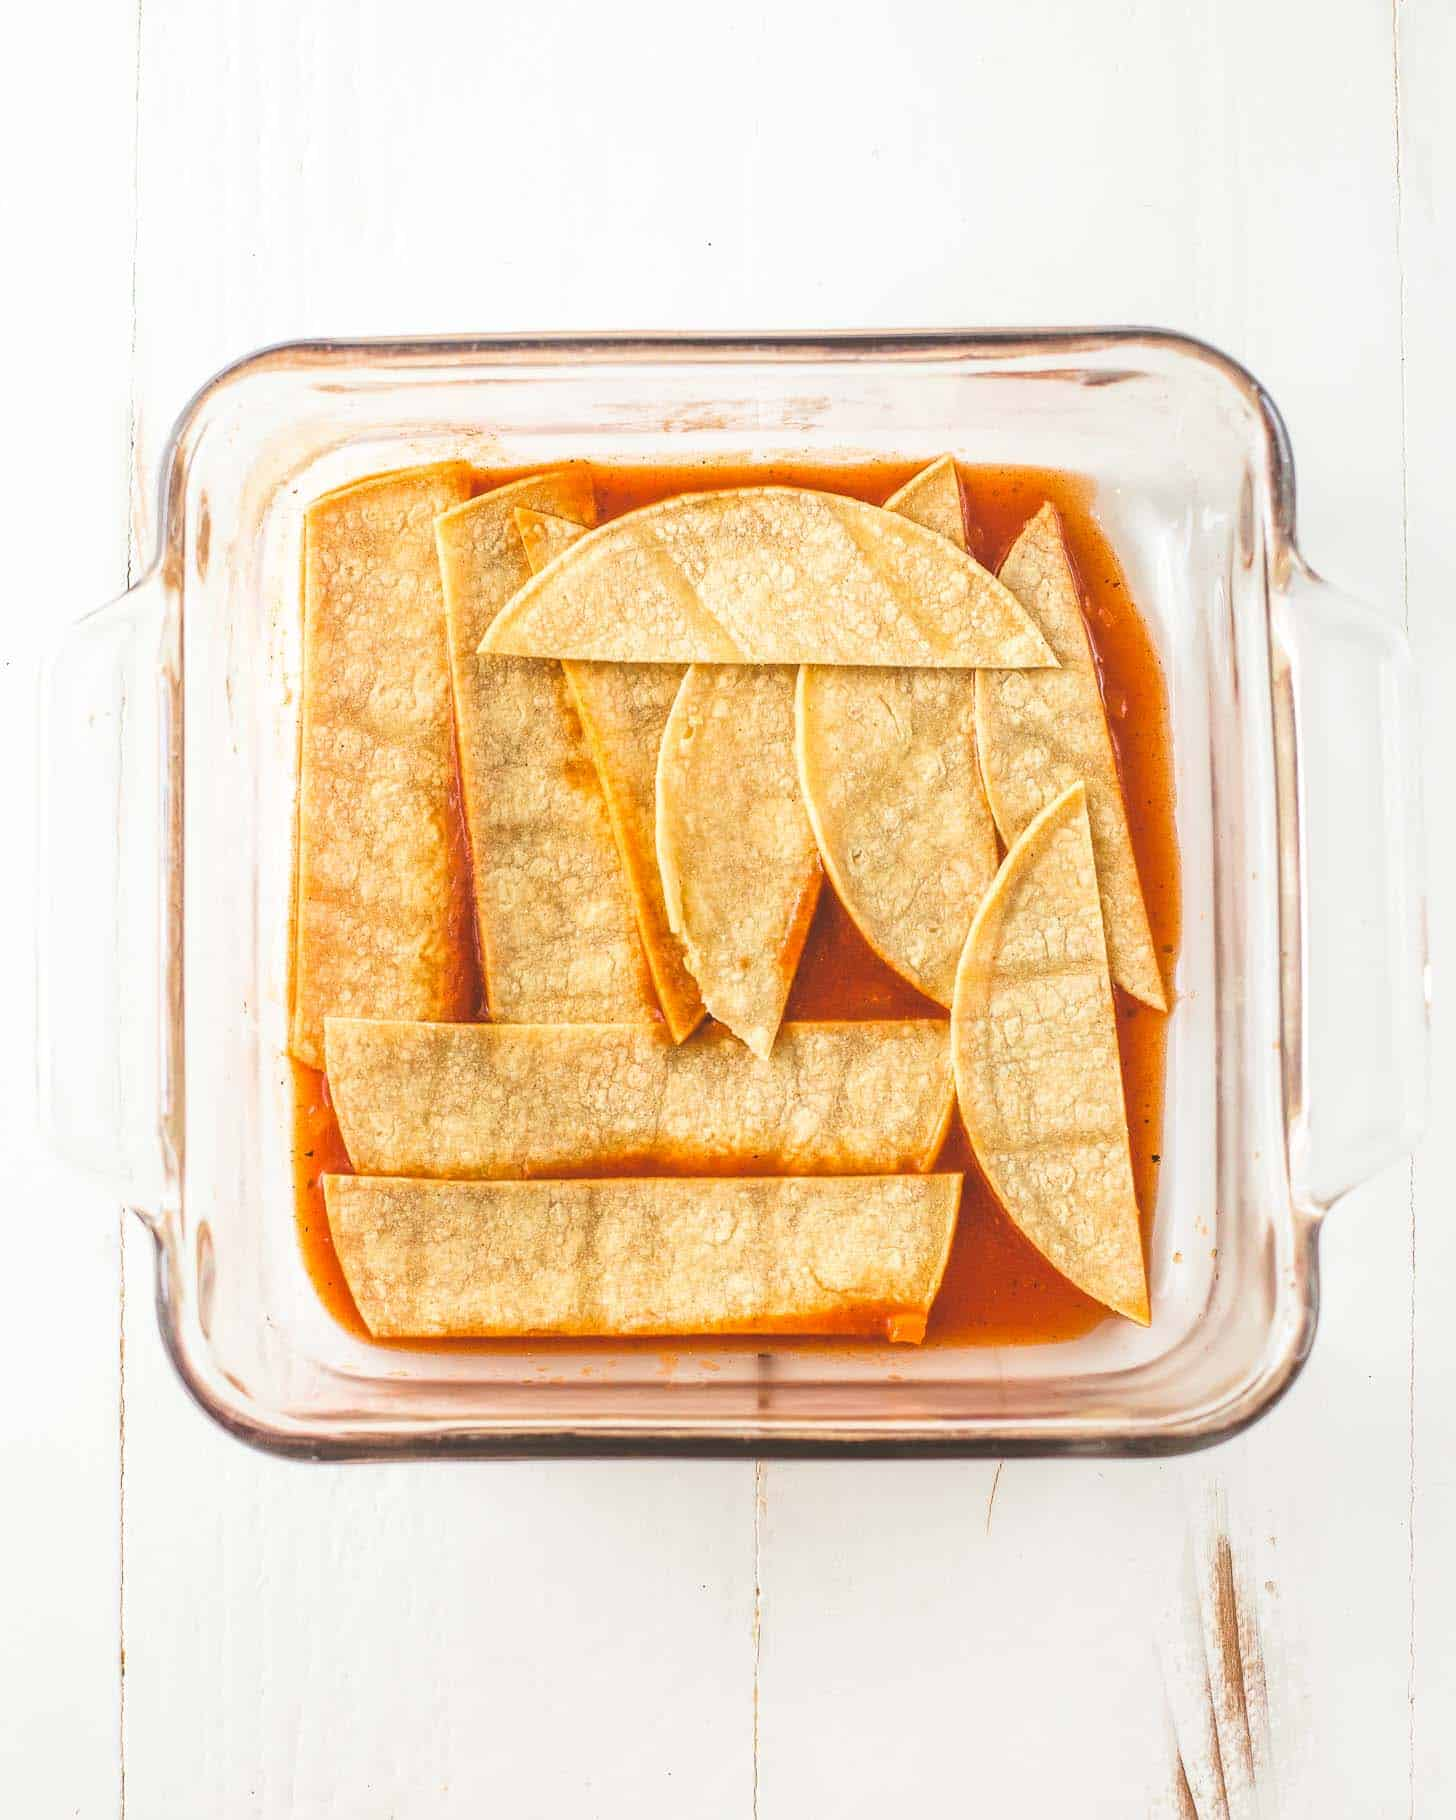 tortillas and enchilada sauce in a square baking dish